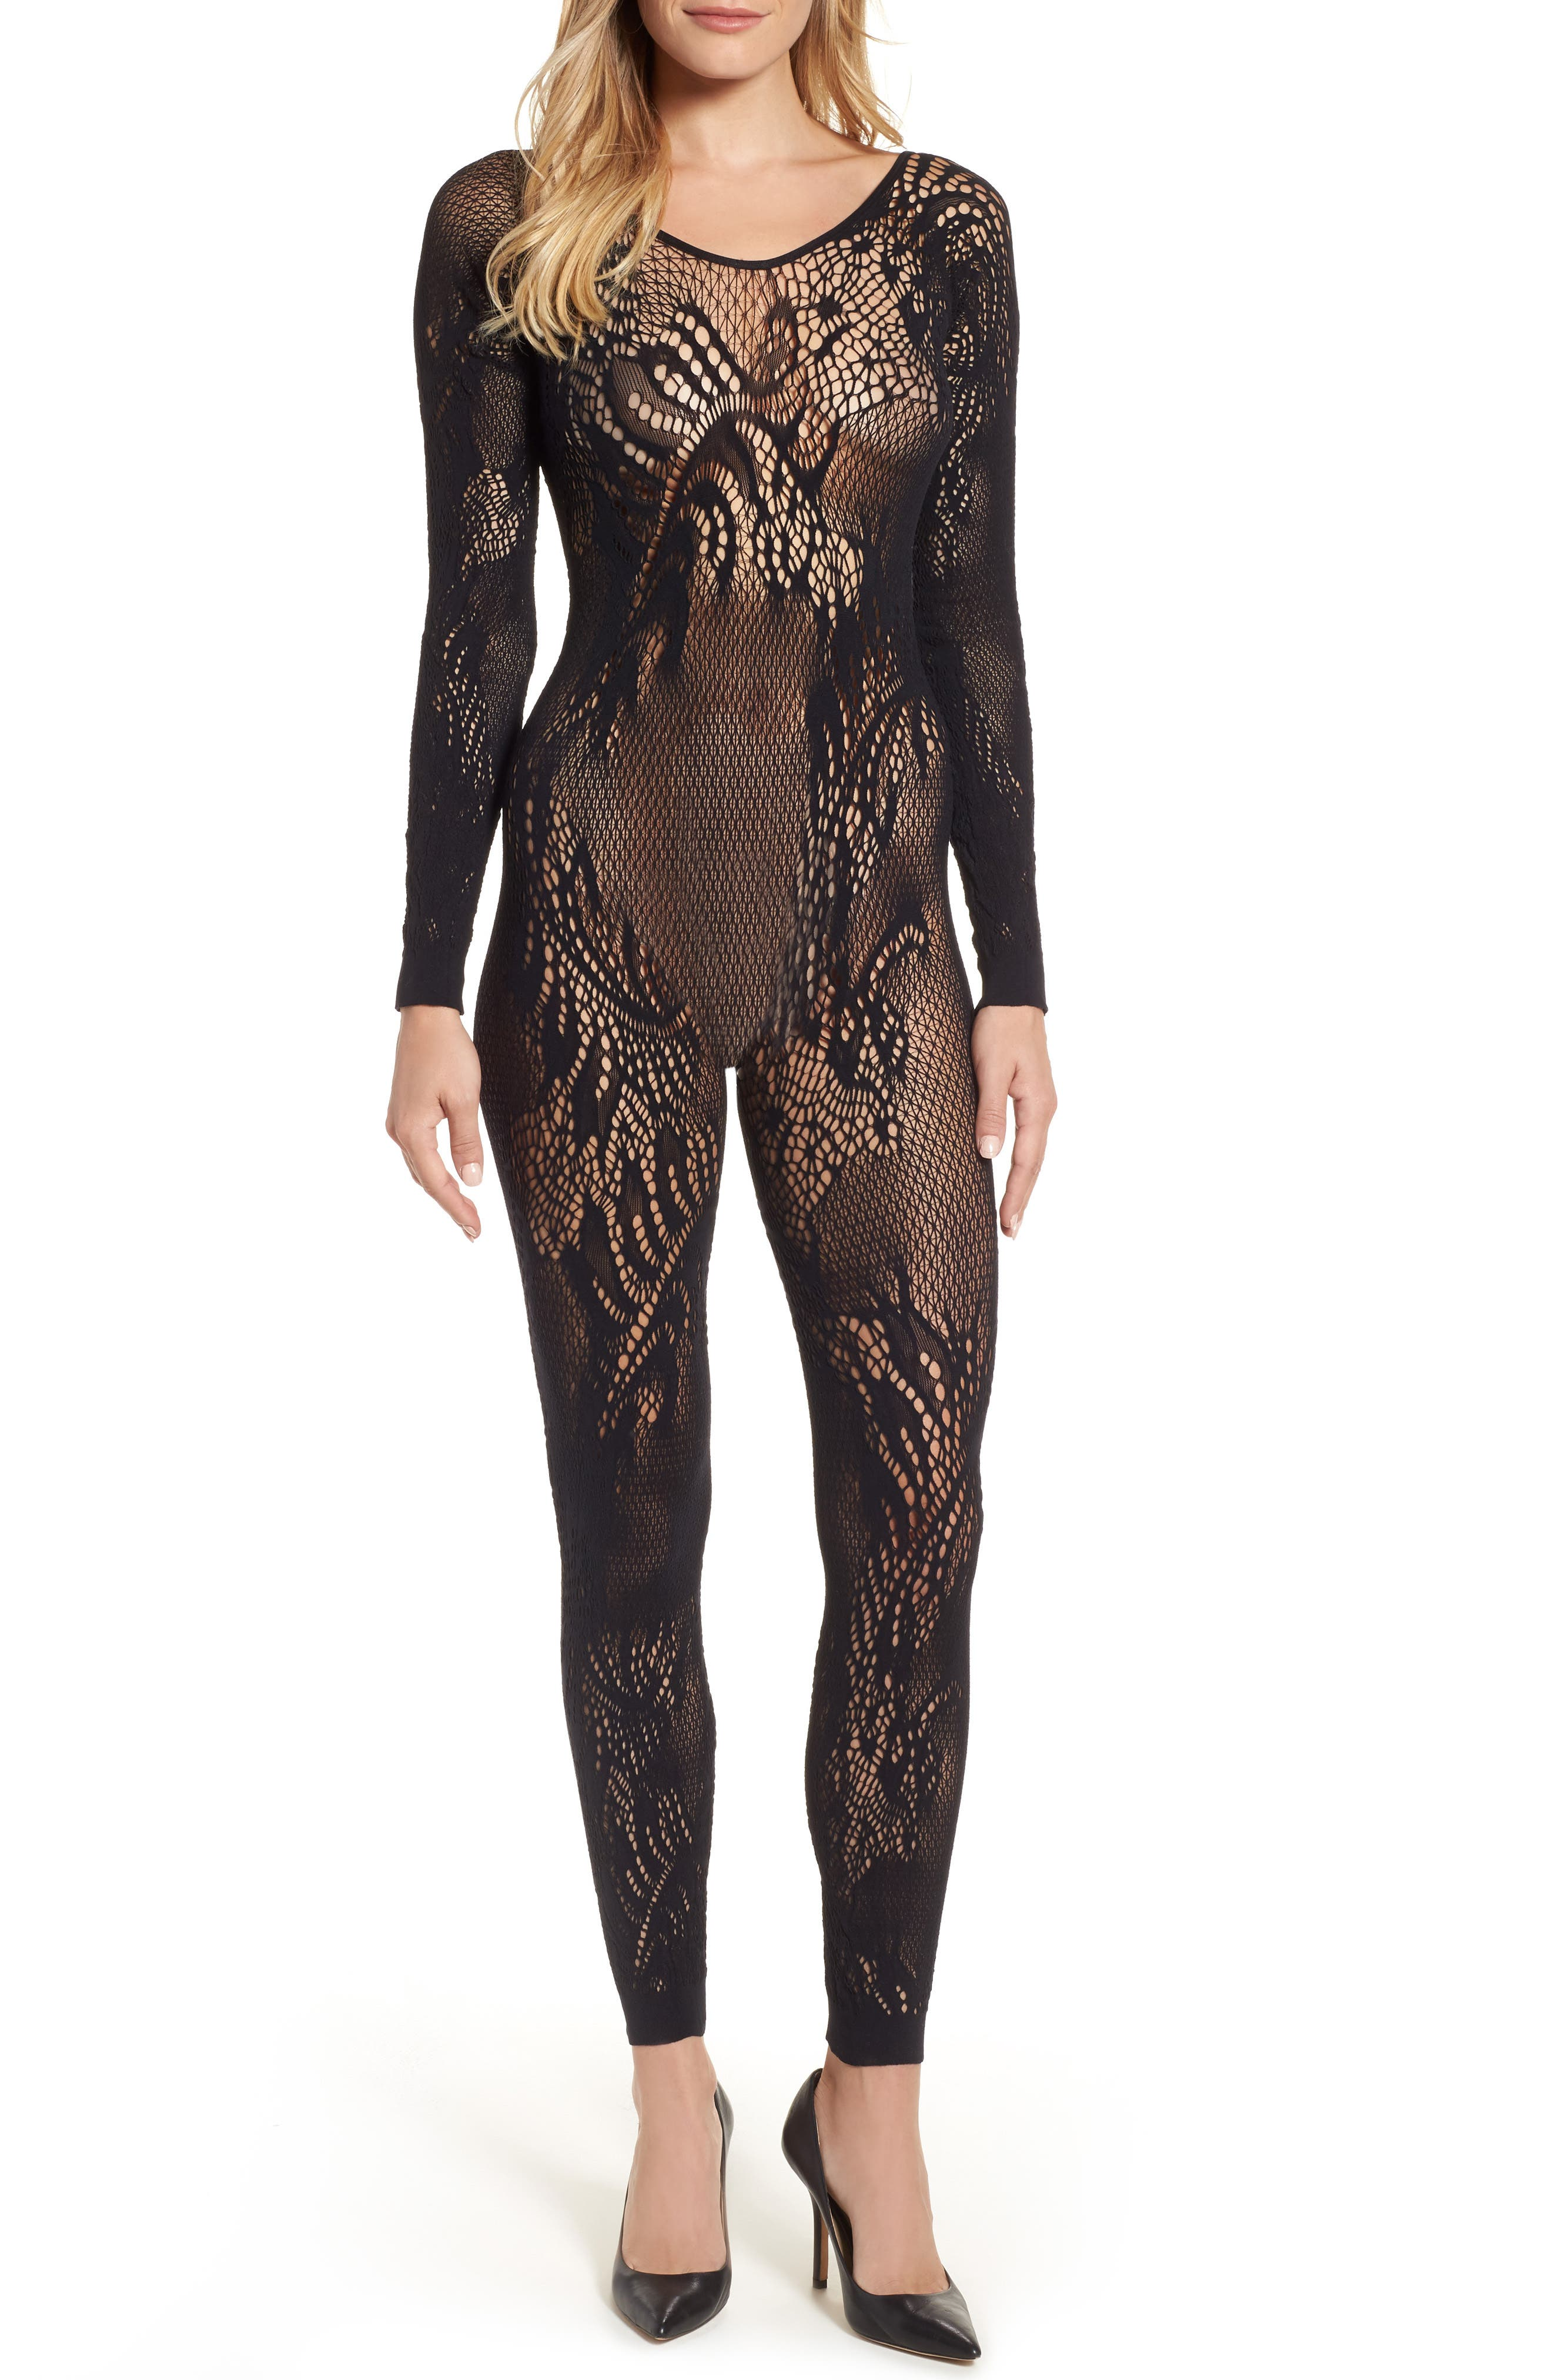 Natori Feathers Long Sleeve Catsuit